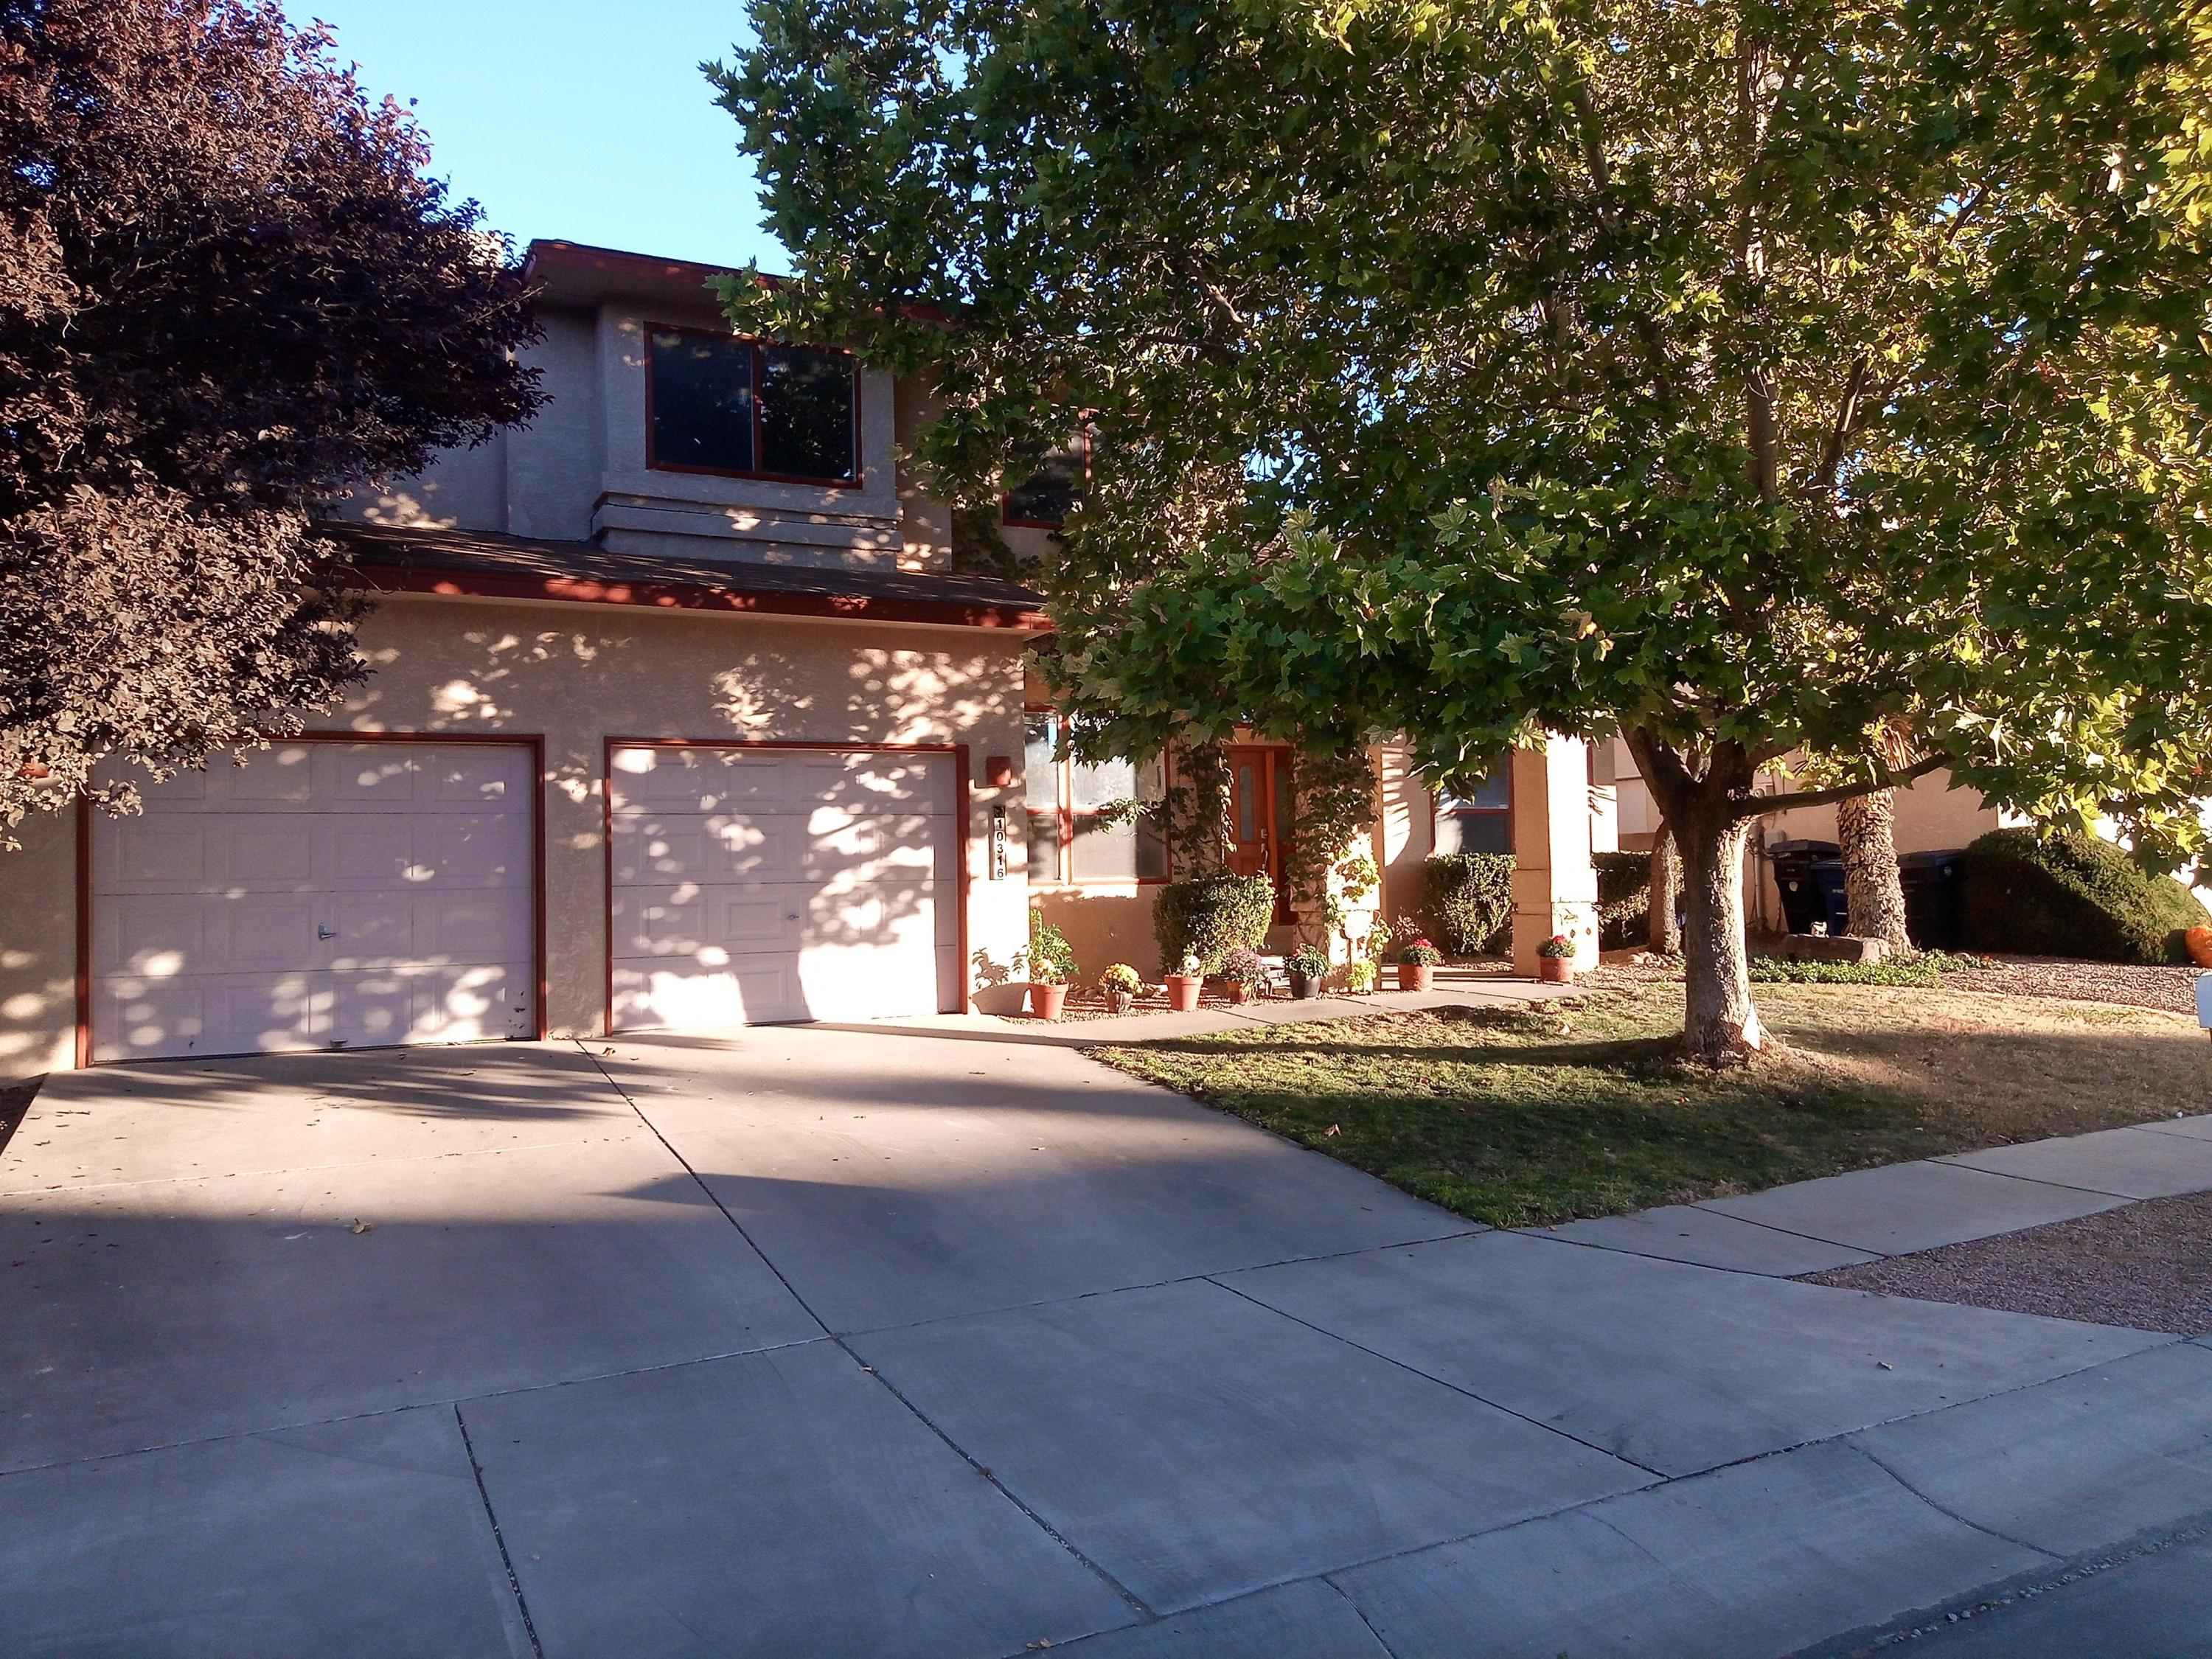 This spacious 3,559 square-foot three-level home features 5 bedrooms, 2 bonus rooms, 3-1/2 bathrooms, and a 2-car garage. It is tucked away in a beautiful, friendly, and safe neighborhood and has unobstructed view of the Hunter's Run park, city, and Sandia Mountains. The main level features open floorplan with large windows, two dining areas, powder room, island kitchen, and walk-in pantry. The upstairs contains the master suite with a walk-in closet, two bedrooms with one featuring a walk-in closet, storage closet, and a full bathroom. The large, fully-finished basement features two bedrooms, a living area and office, full bath, walk-in closet, plenty of storage, and laundry room. The home is conveniently located near schools, shopping, and restaurants with easy access to major roads.